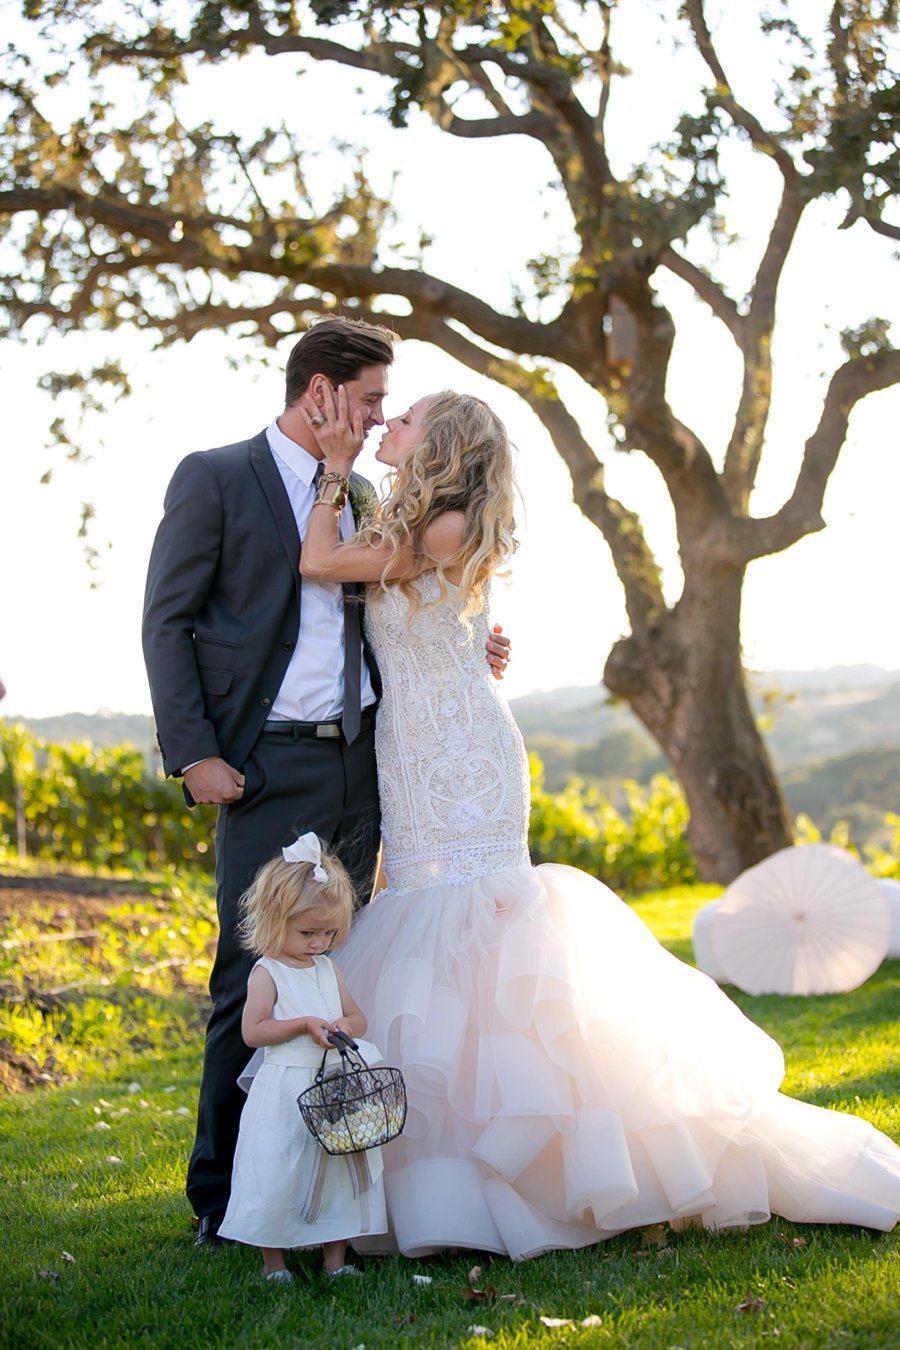 STOLPMANN VILLA AND VINEYARDS | LOS OLIVOS WEDDING PHOTOGRAPHER CHRIS HOLT PHOTOGRAPHY_052.jpg